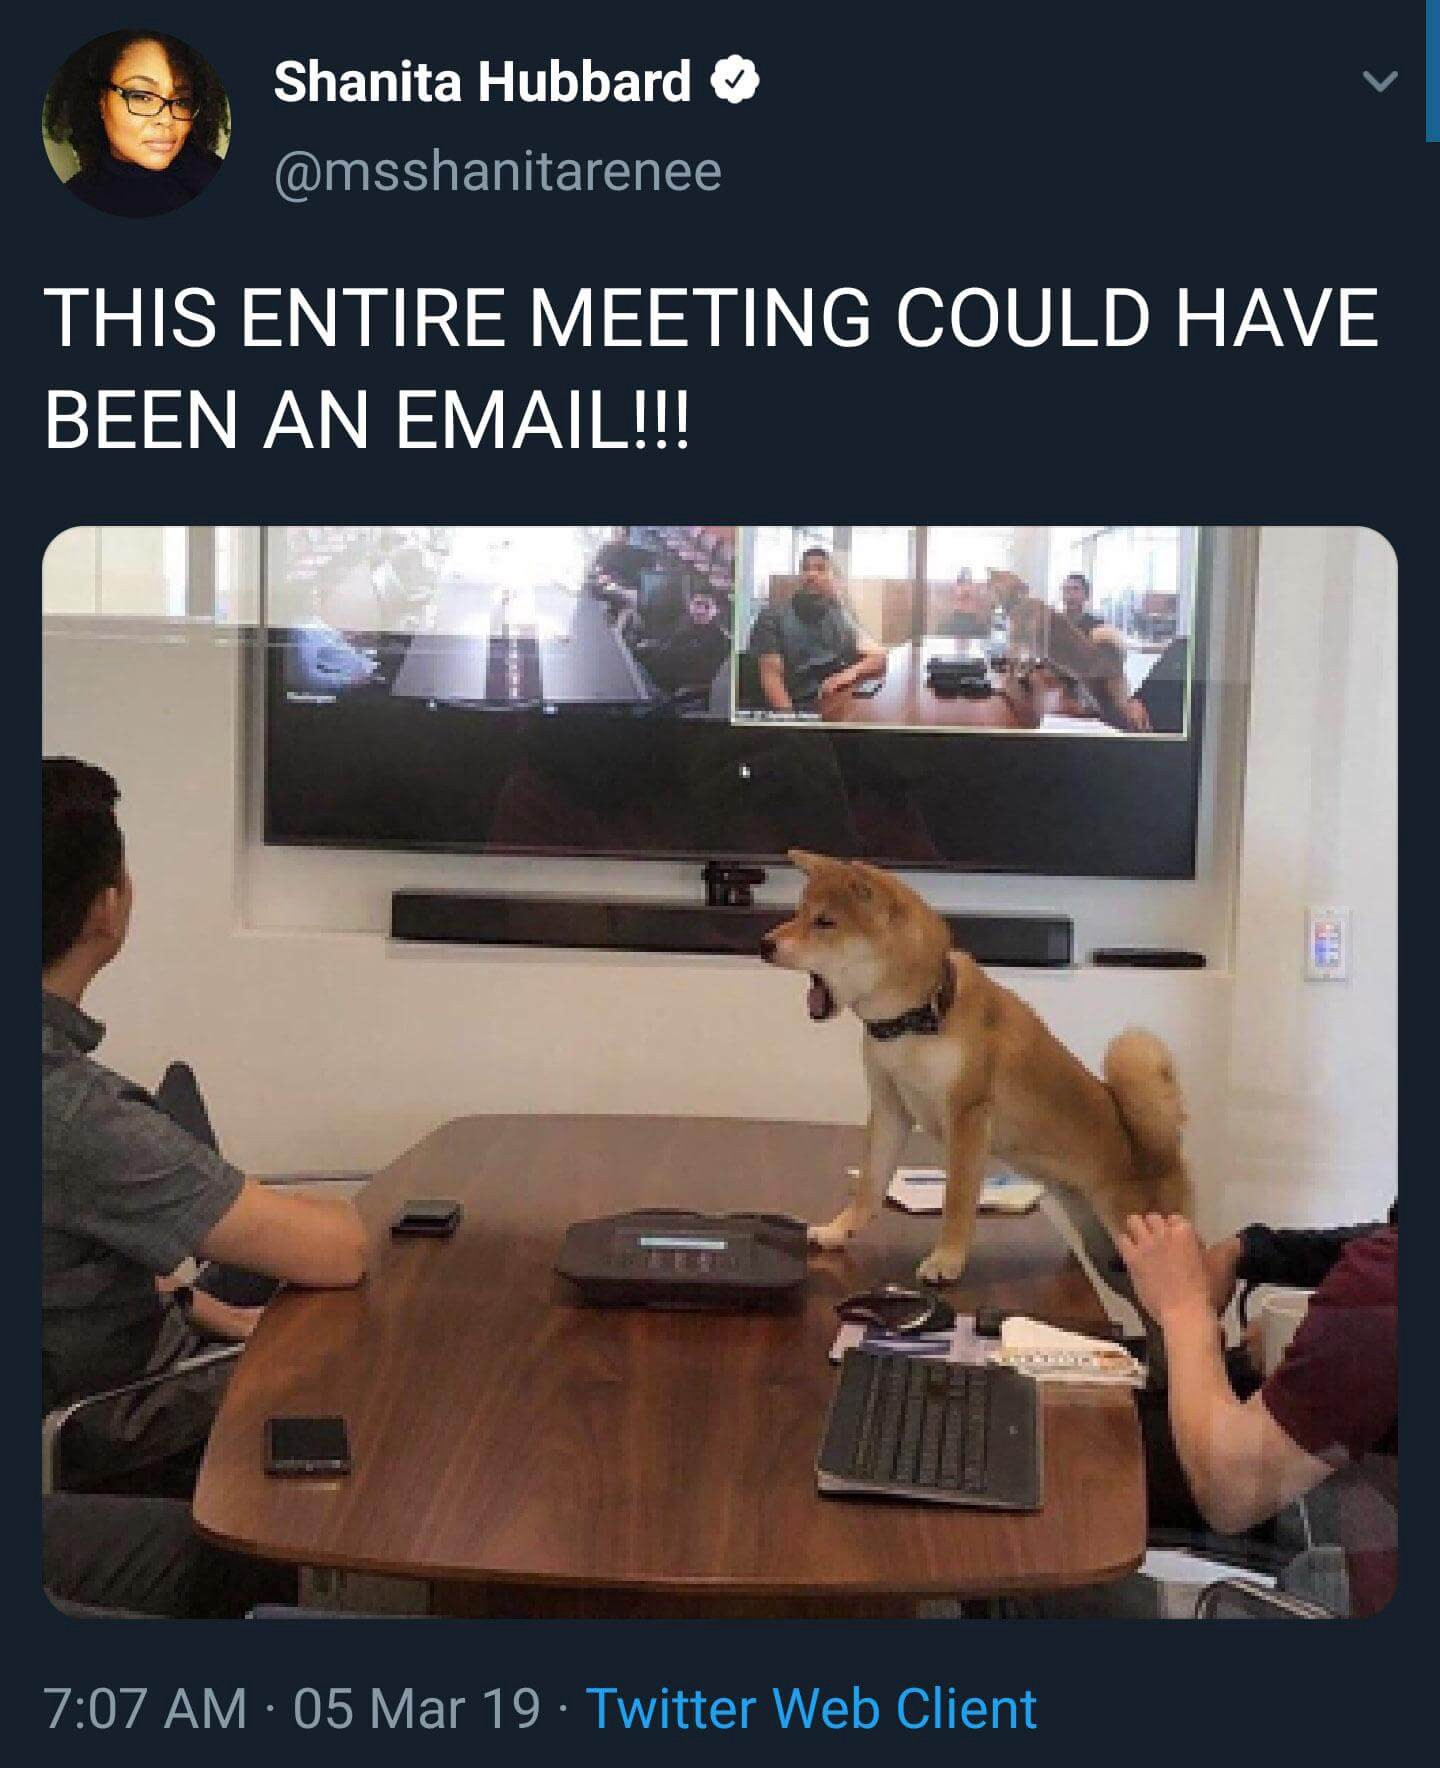 Meeting could have been an email